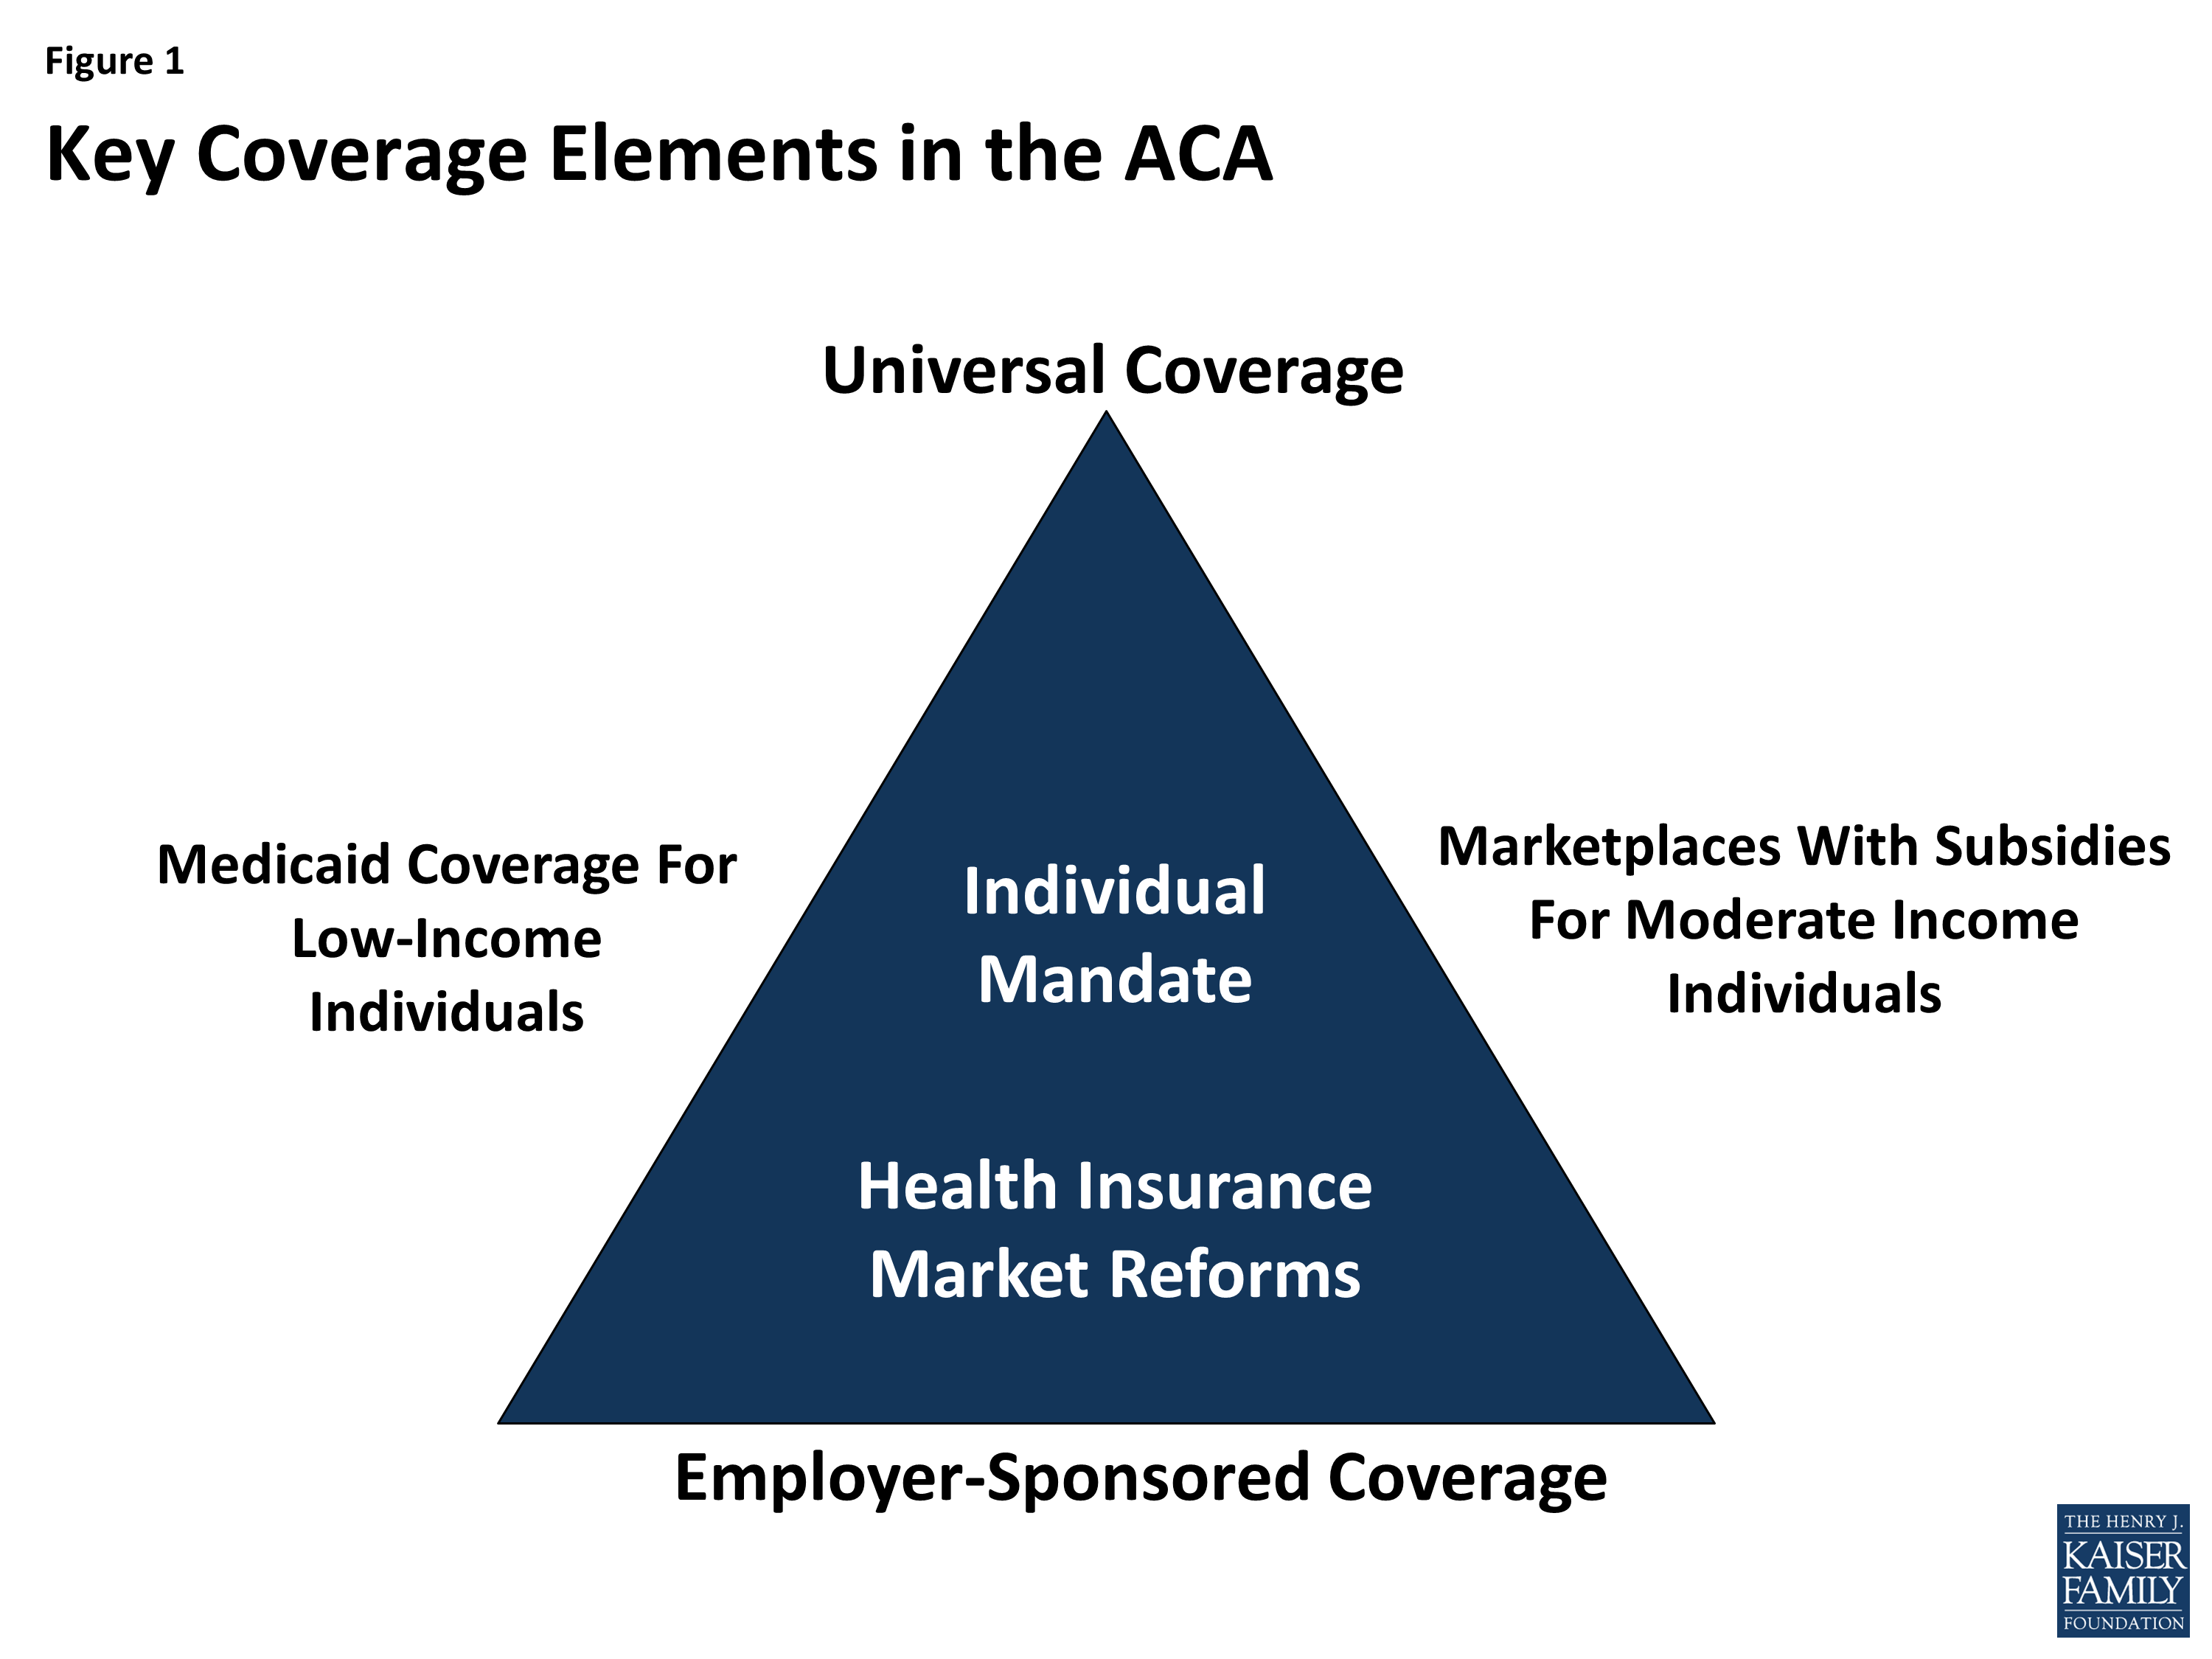 The Coverage Provisions in the Affordable Care Act: An Update